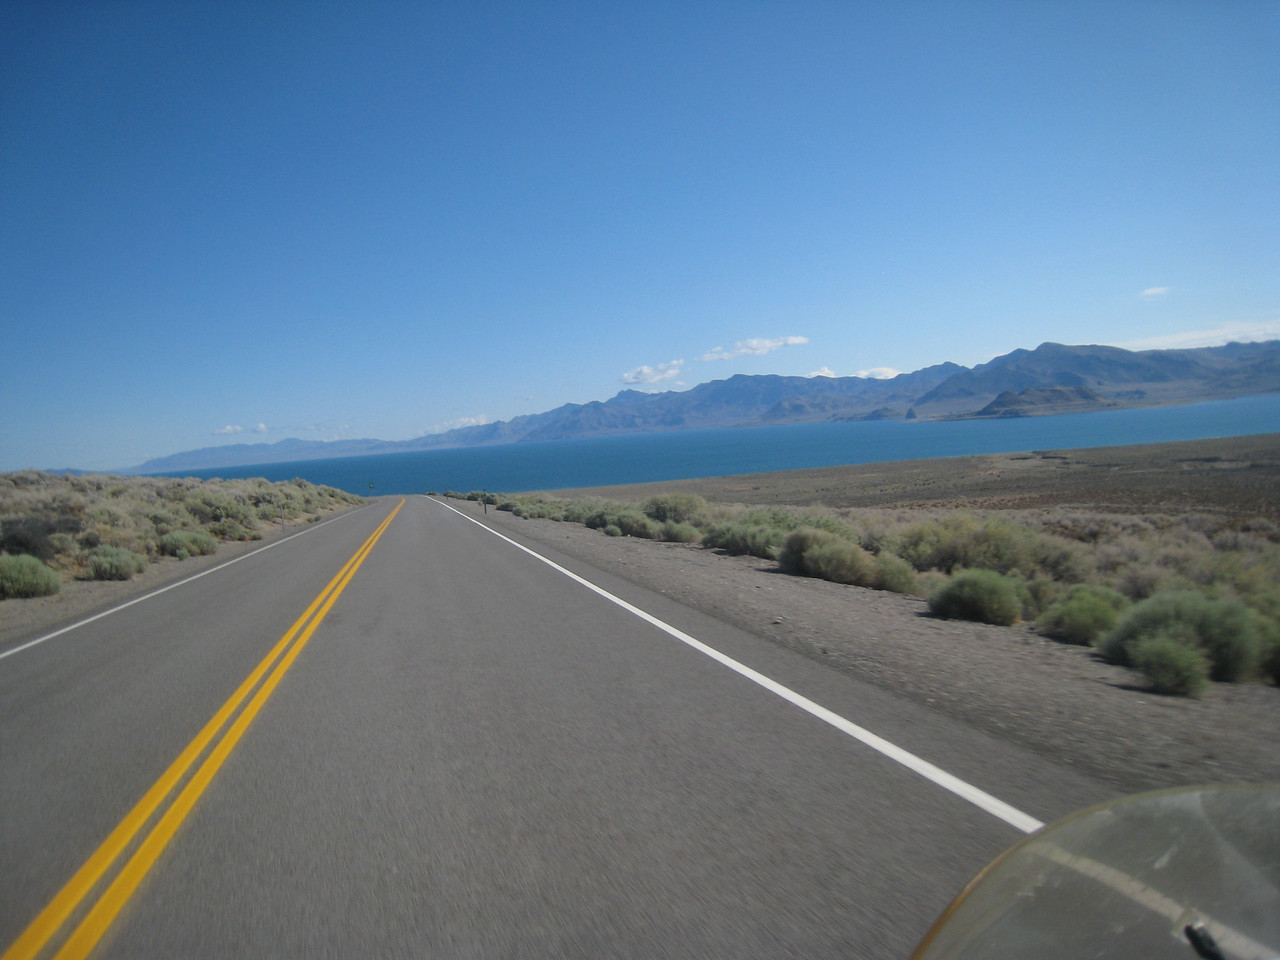 My route north takes me past Pyramid Lake, which contains the spill-over from Lake Tahoe and is also blue, but not nearly as deep or majestic.